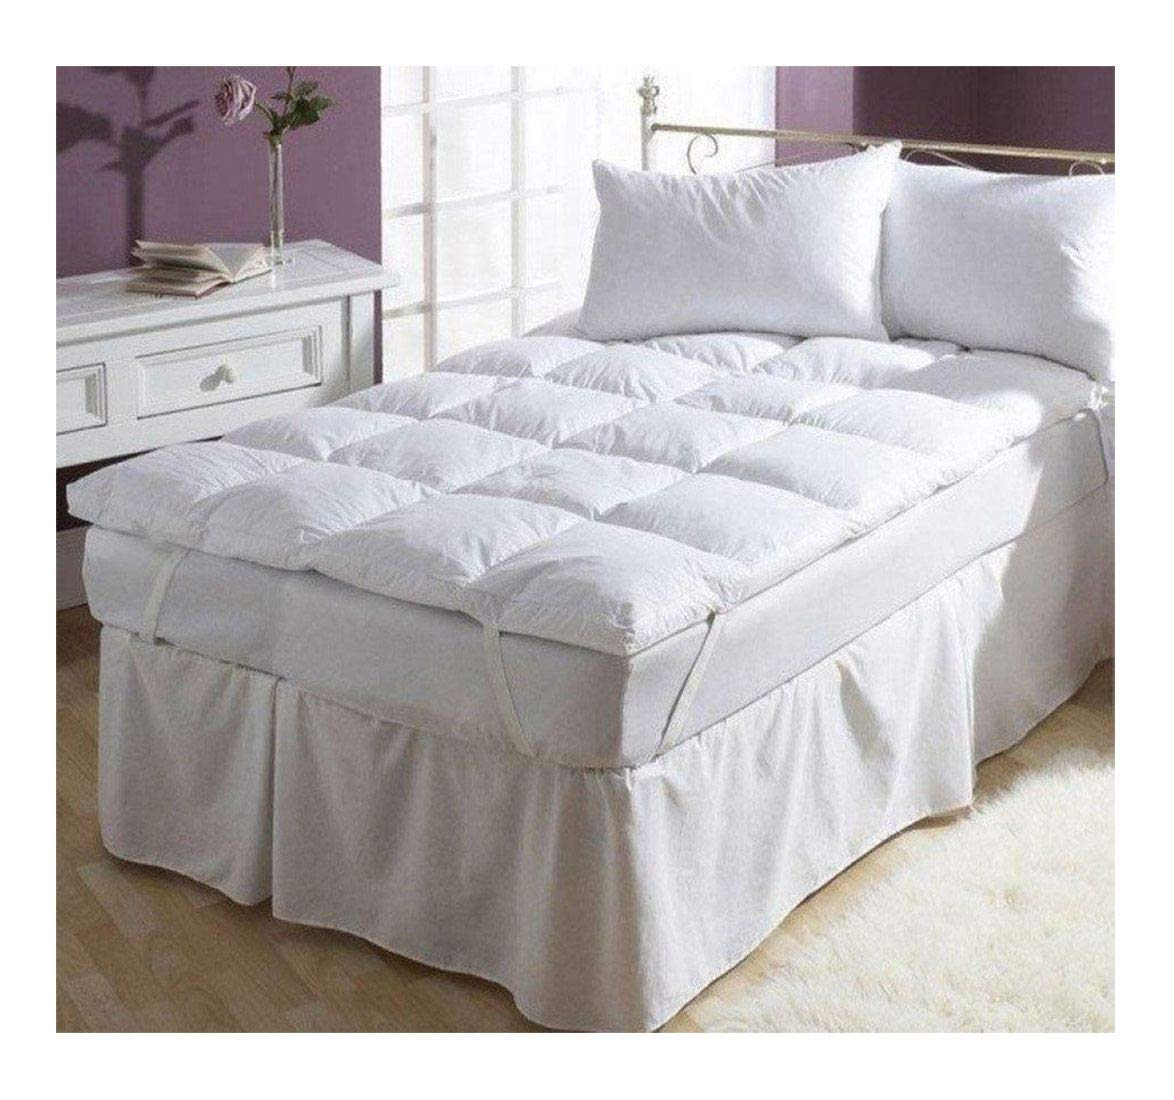 Rimi Hanger Luxury Soft 100% Cotton Duck Feather and Down Mattress Filled Topper Double